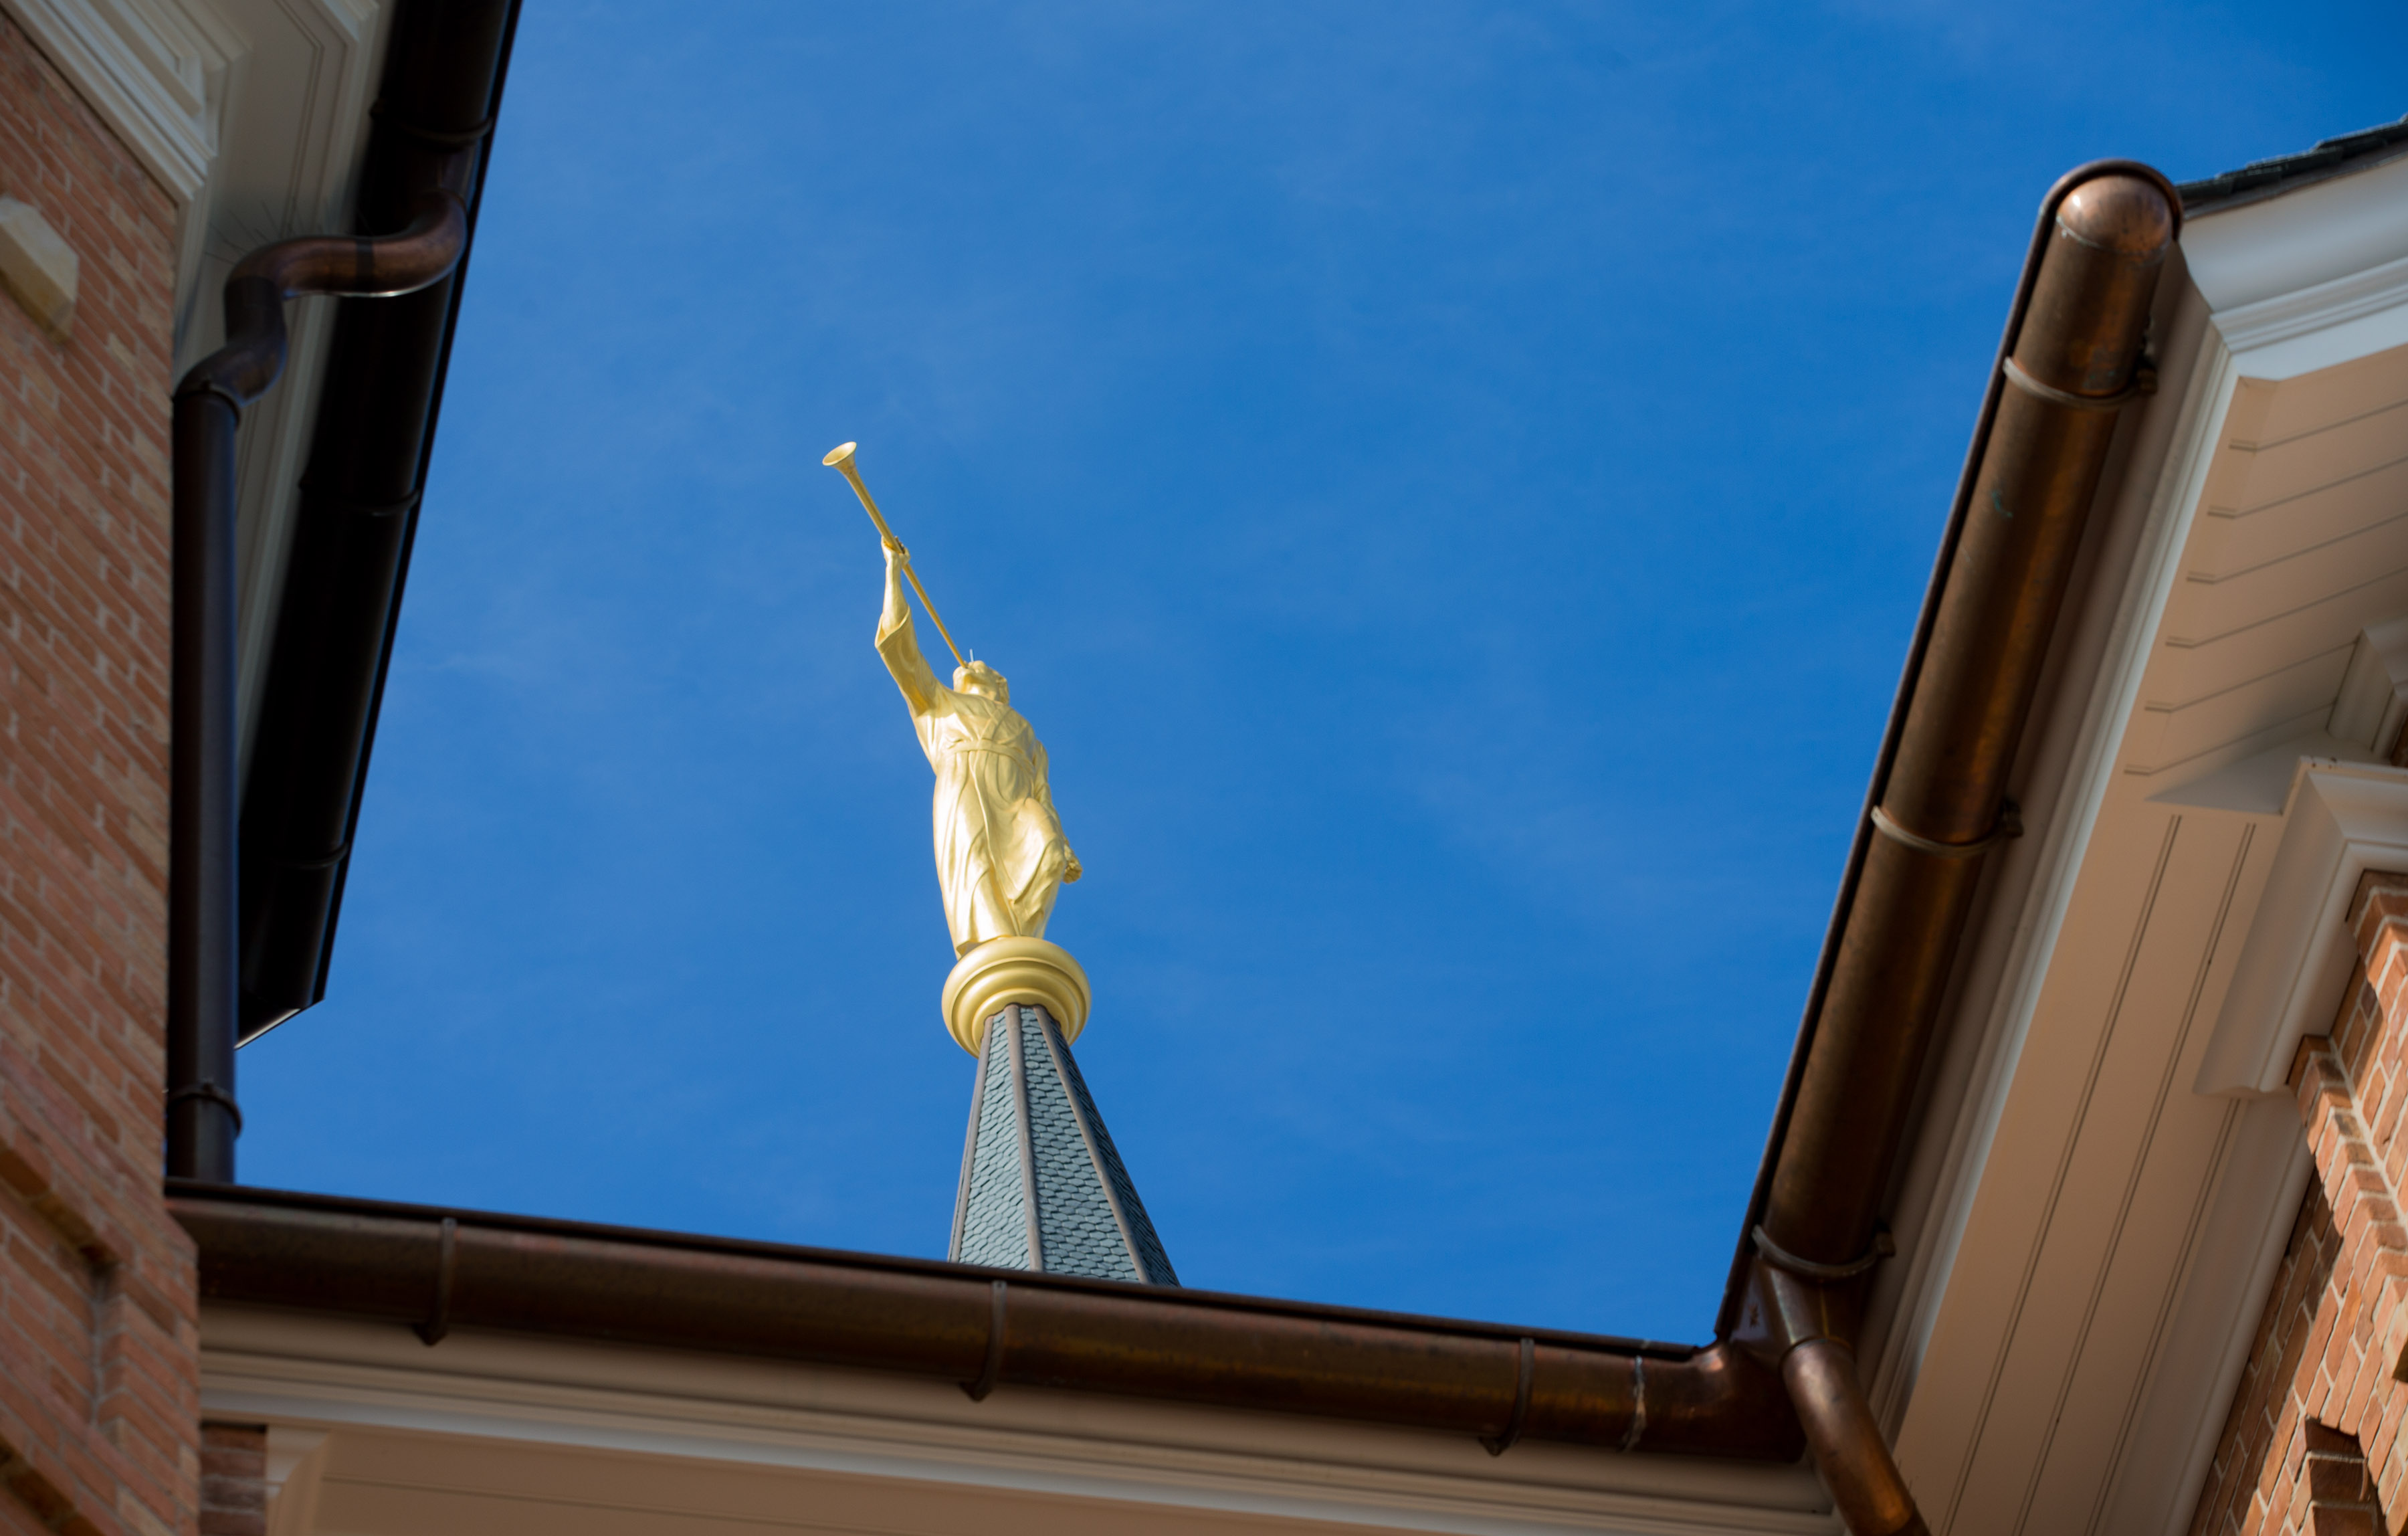 The statue of the Angel Moroni is shown between towers atop the Provo City Temple Monday, Jan. 11, 2016.